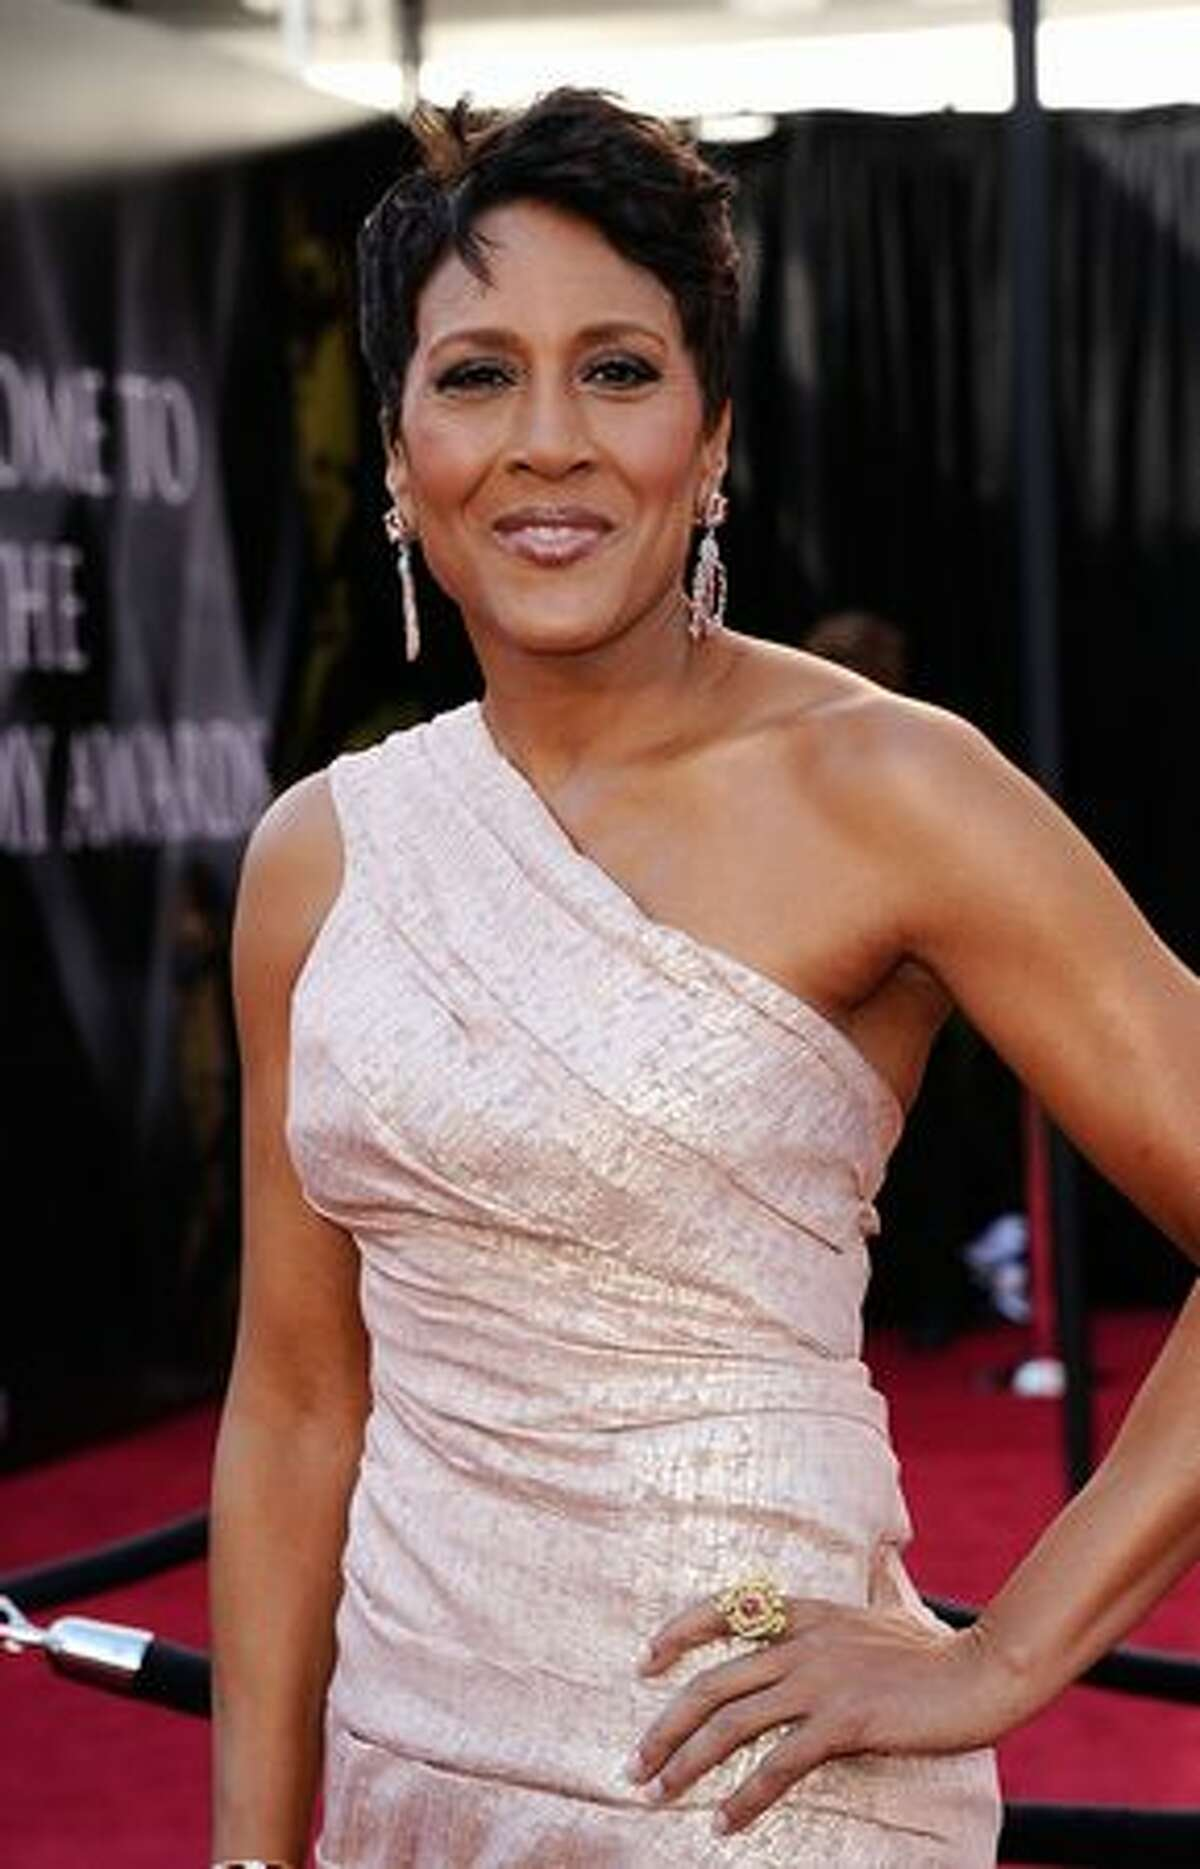 TV personality Robin Roberts arrives at the 83rd Annual Academy Awards held at the Kodak Theatre in Hollywood, California.